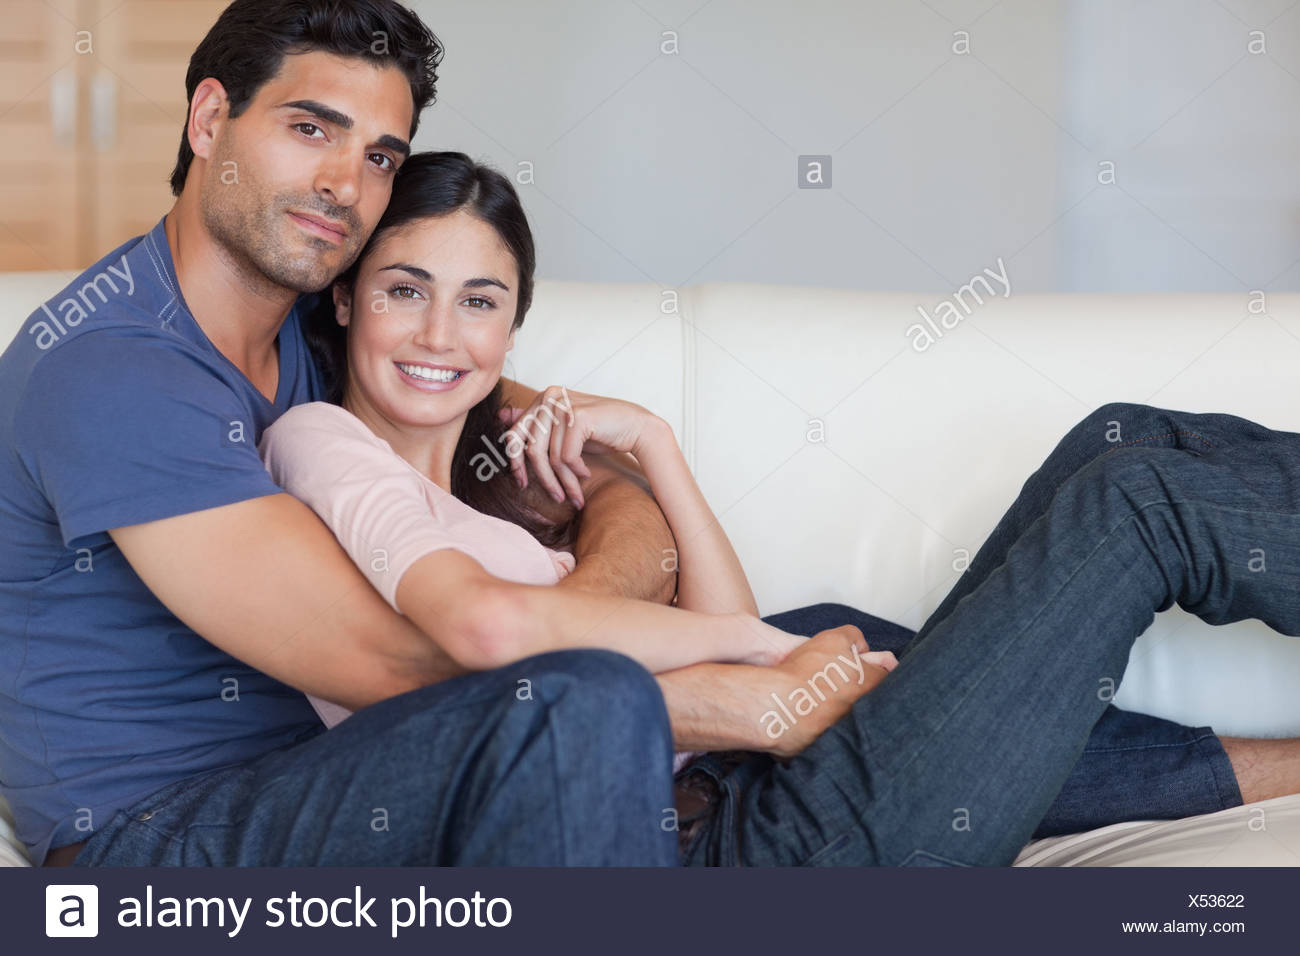 Lovely young couple posing - Stock Image